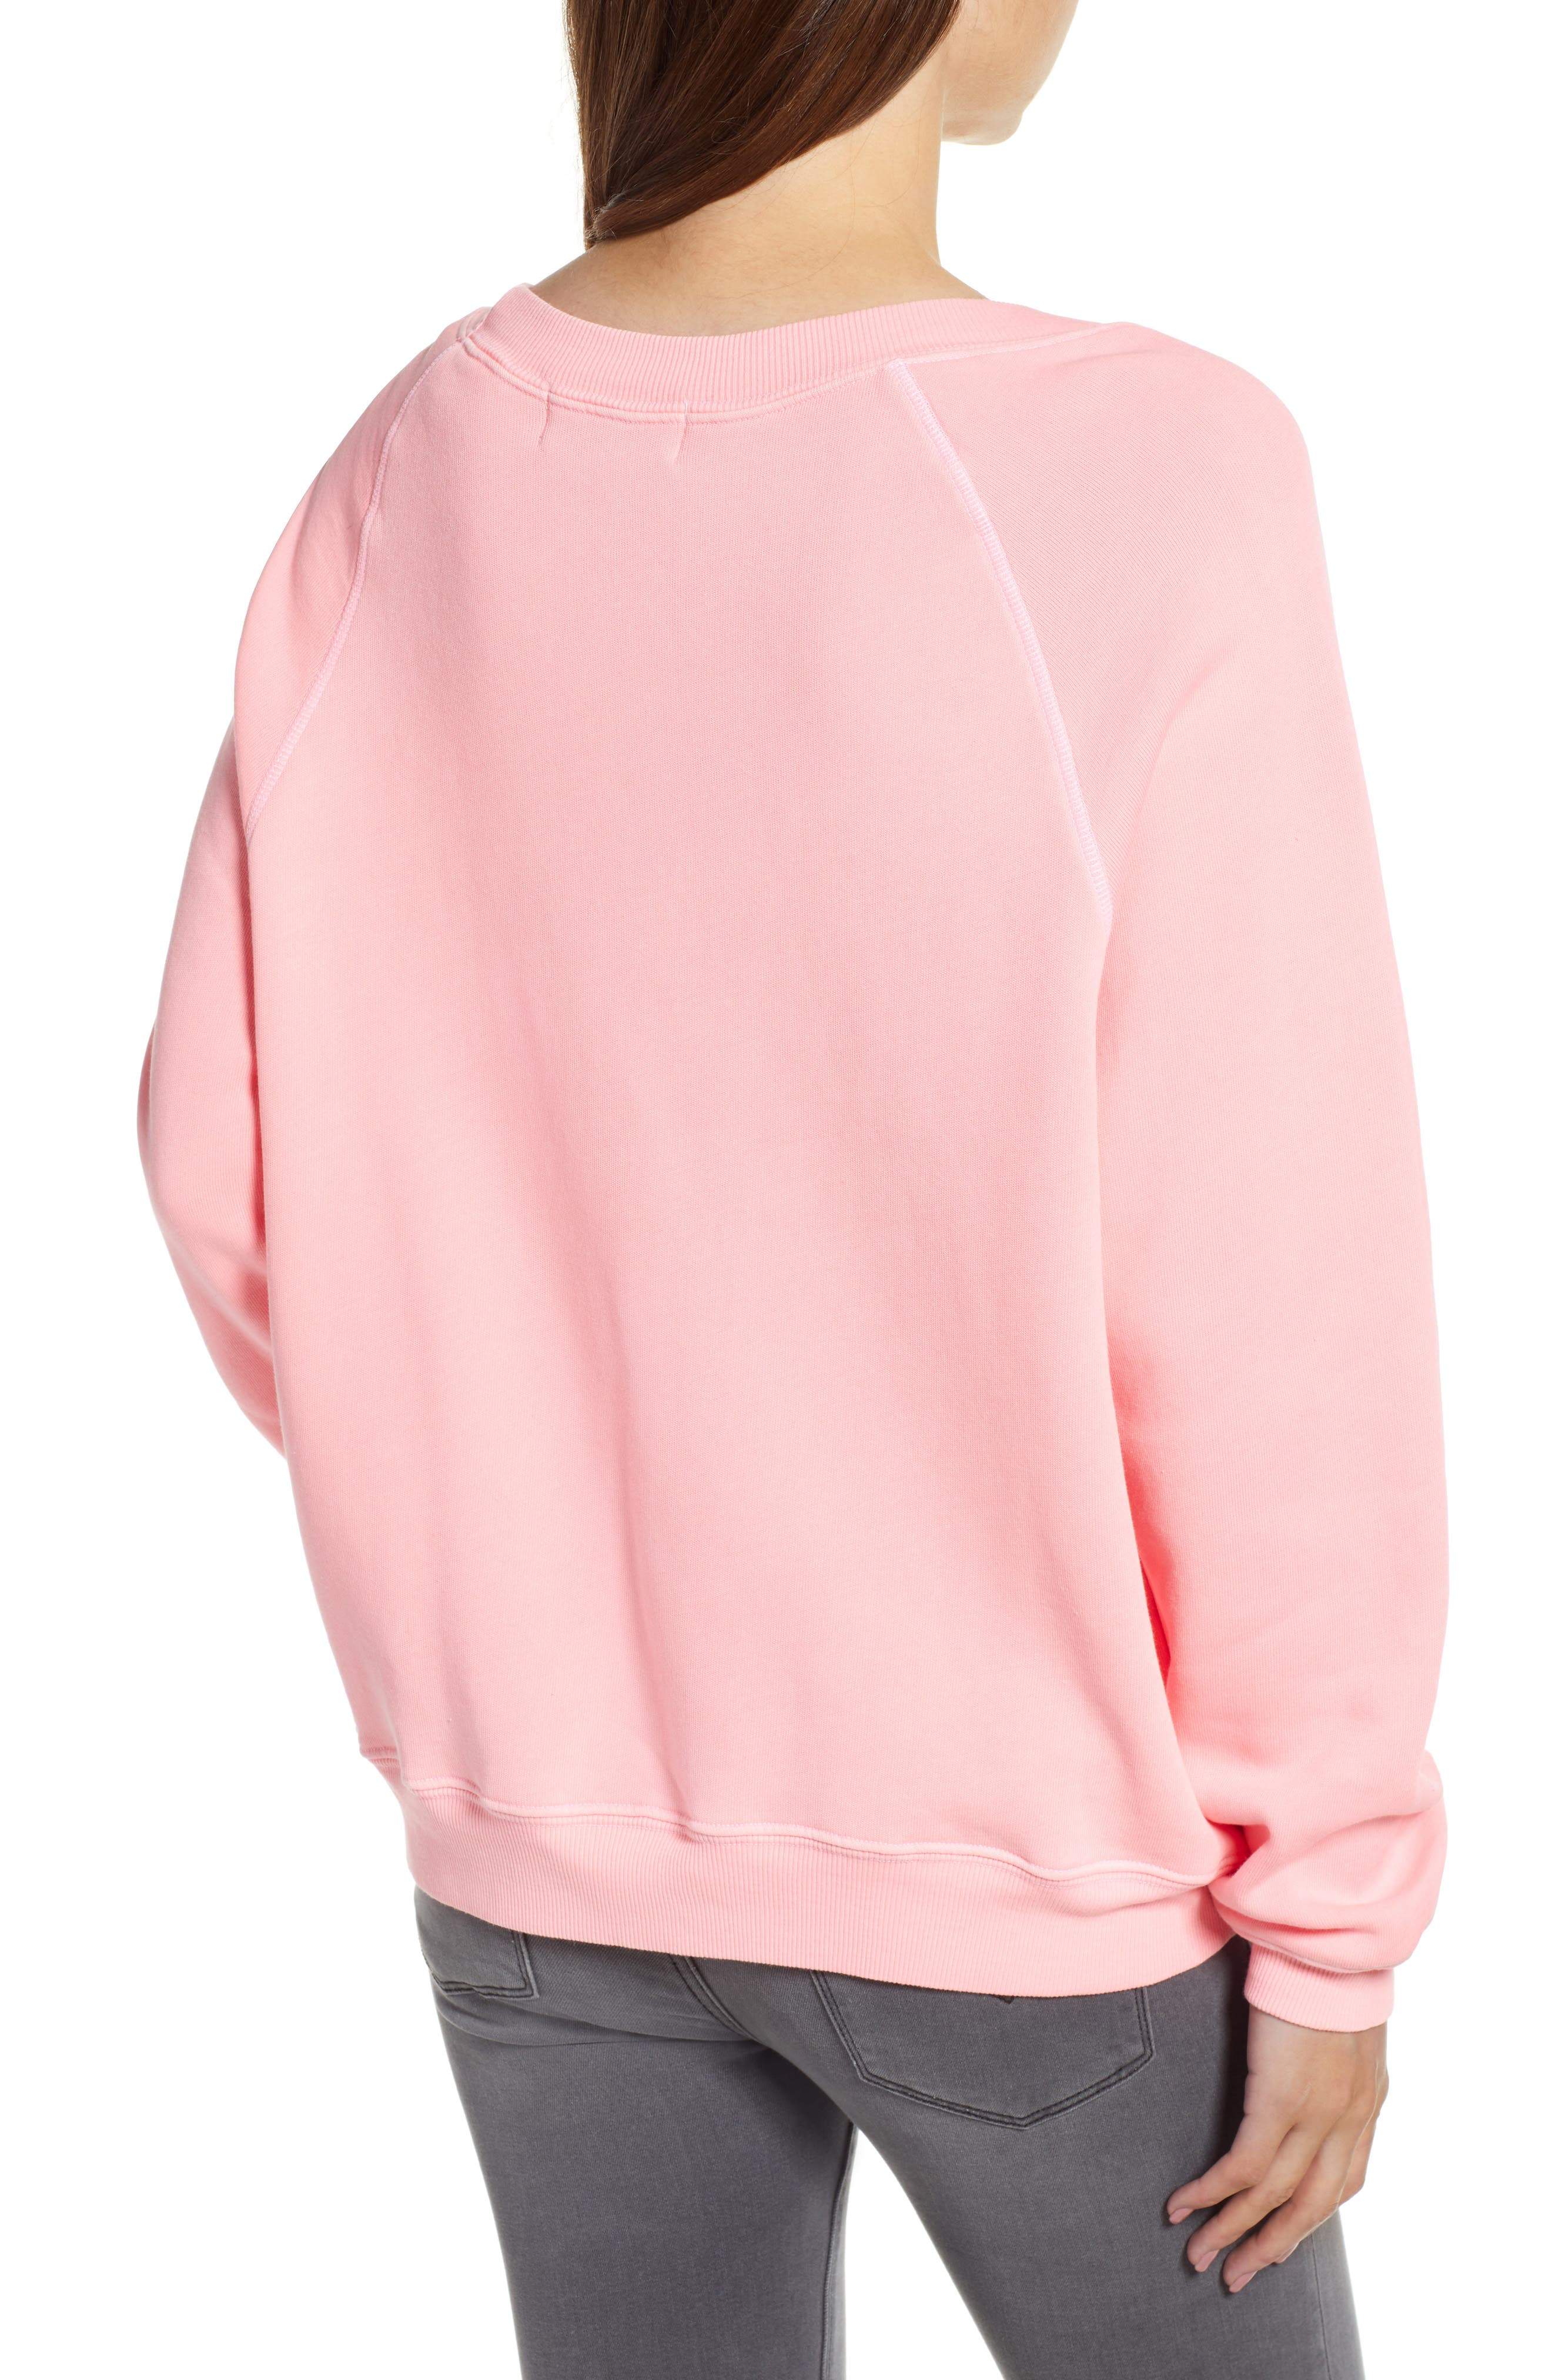 Open Me First Sommers Sweatshirt,                             Alternate thumbnail 2, color,                             NEON SIGN